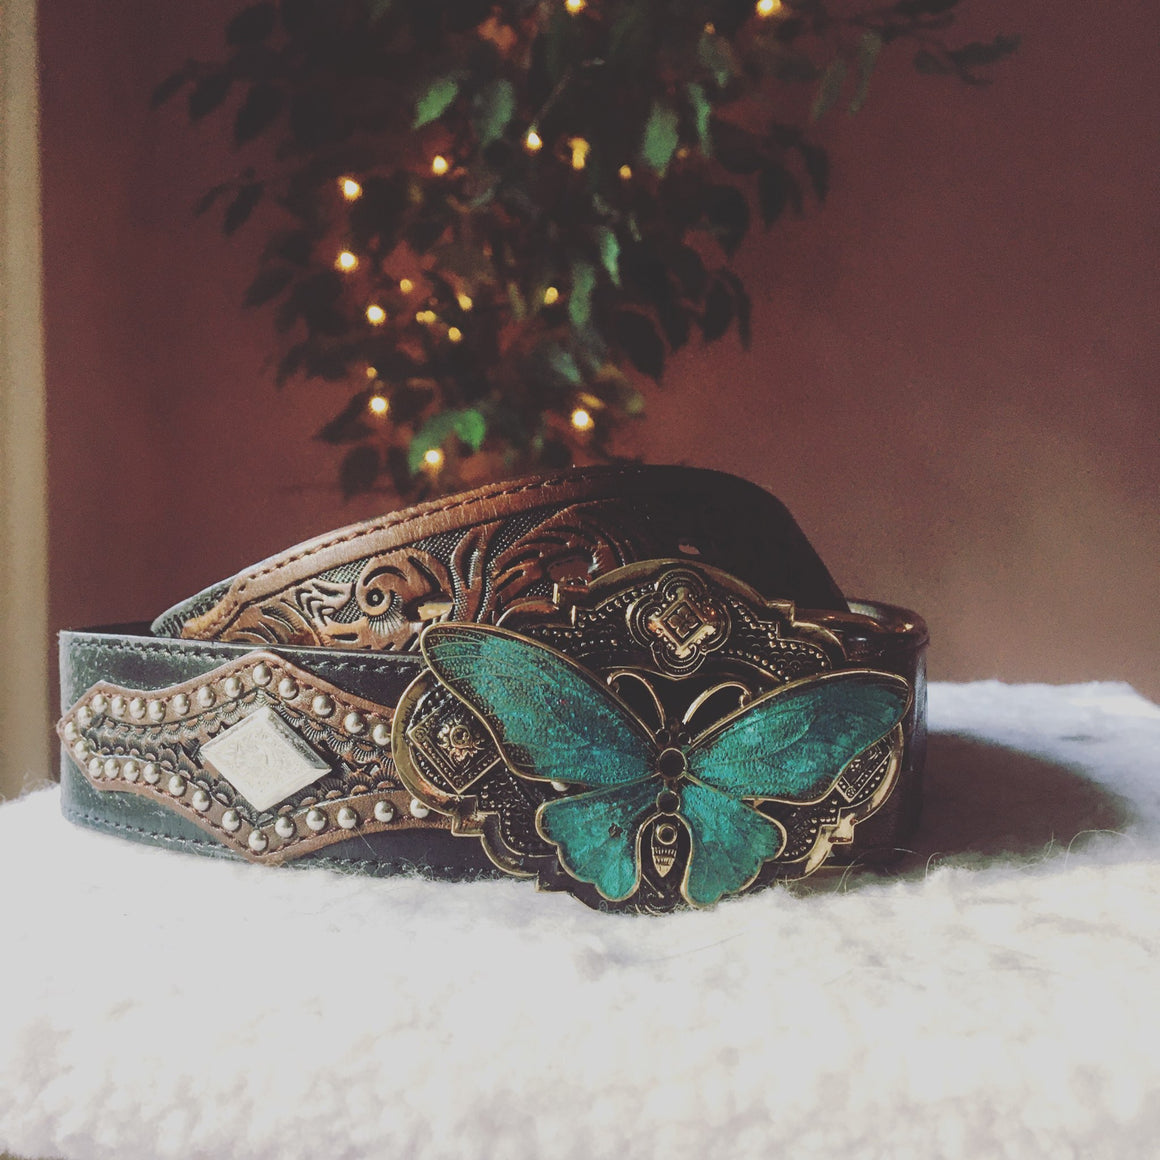 Butterfly Buckle - Sur Tan Mfg. Co.